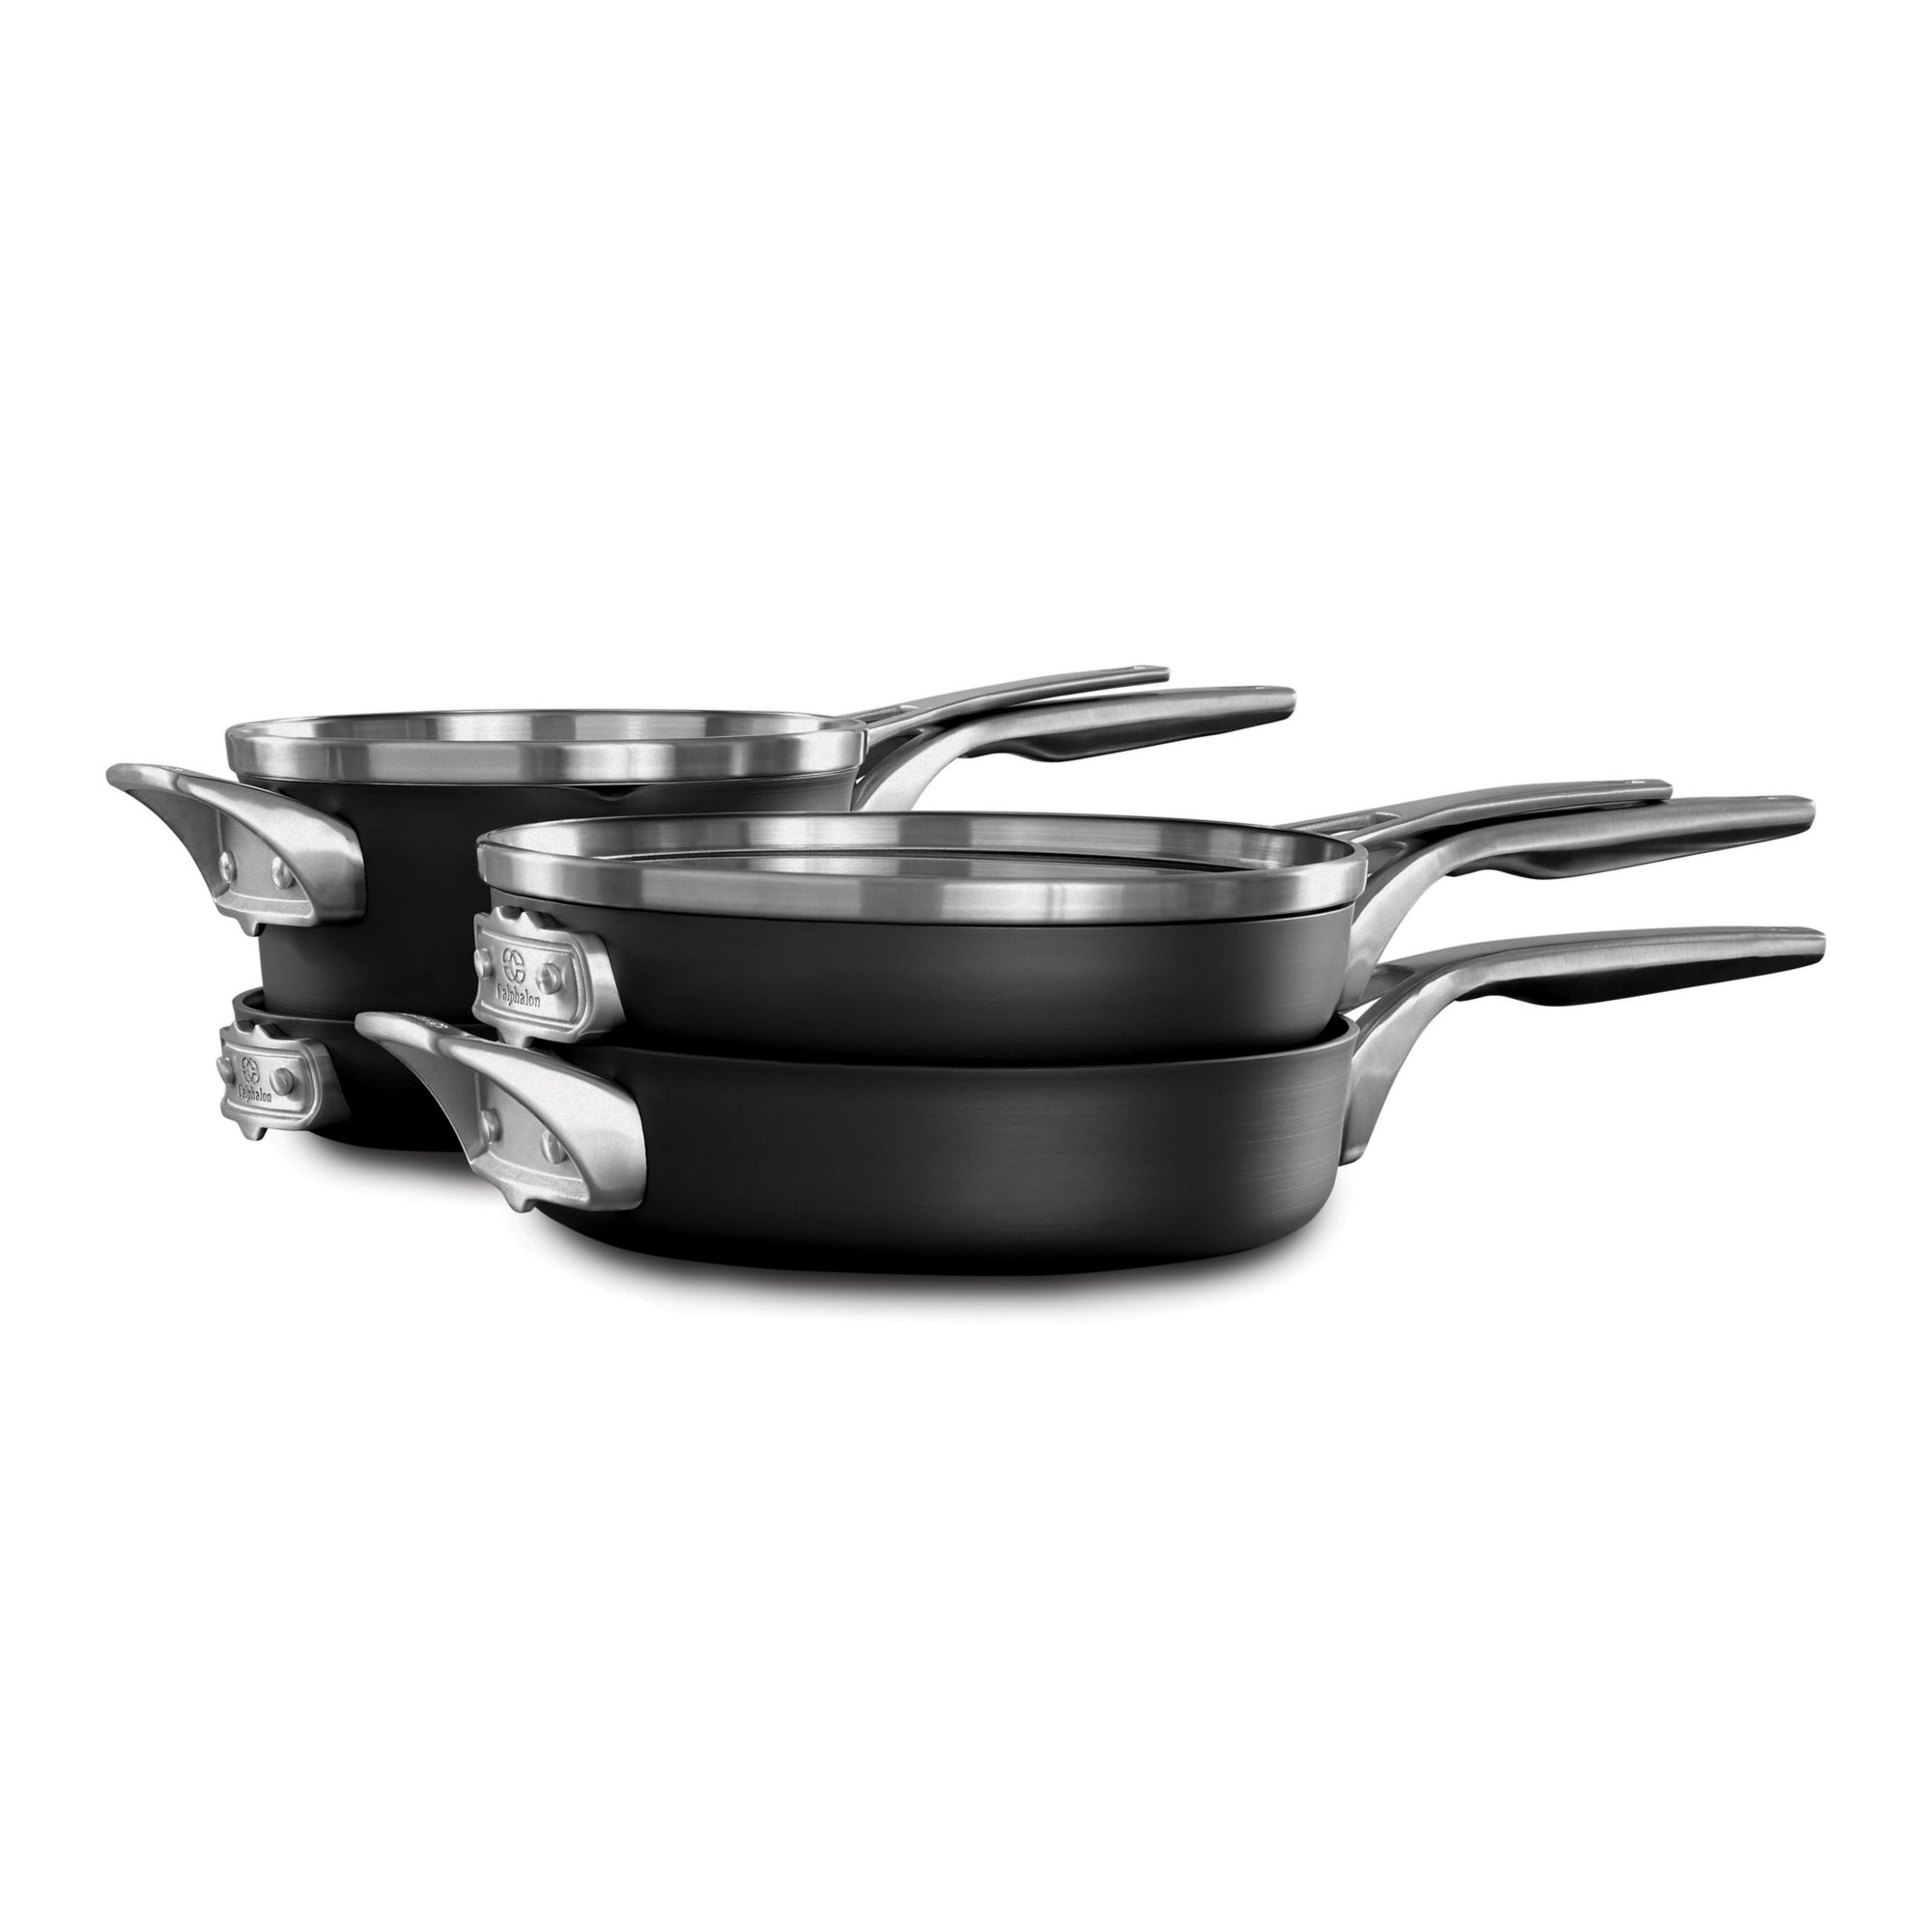 Calphalon Premier™ Space Saving Hard Anodized Nonstick 6-Piece Cookware Set